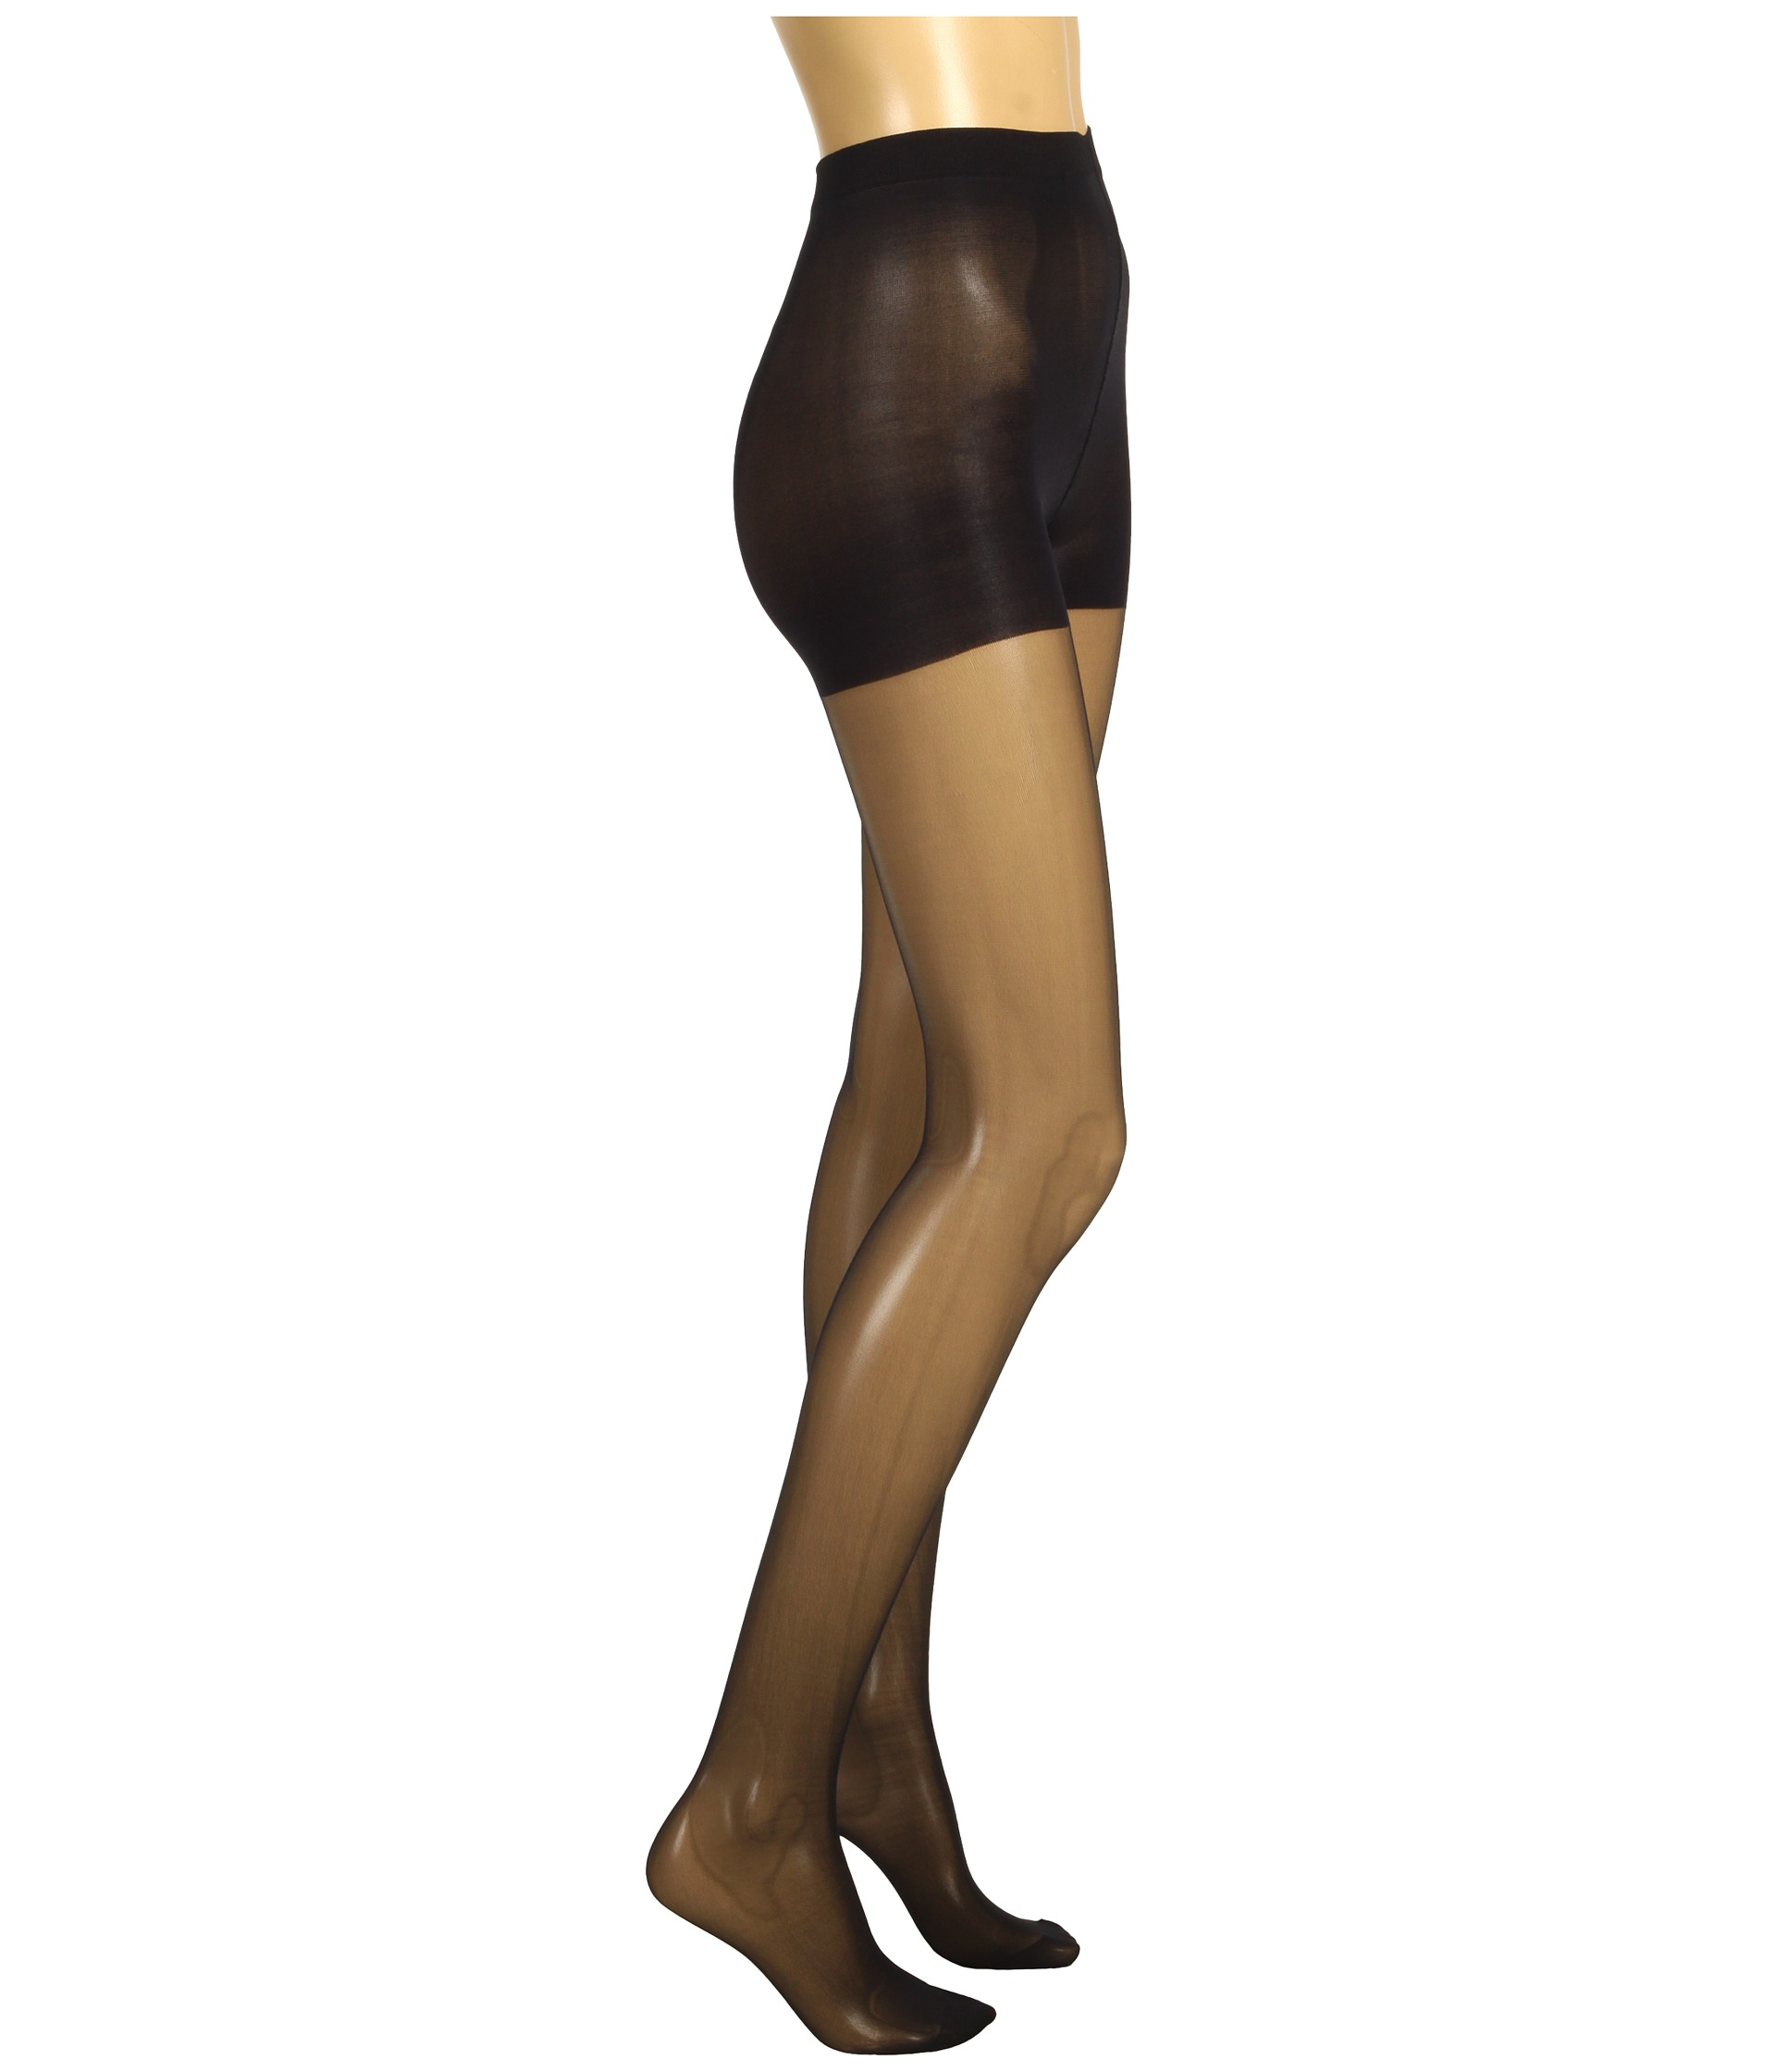 60868a1c79 Wolford Individual 10 Control Top Tights Black on PopScreen